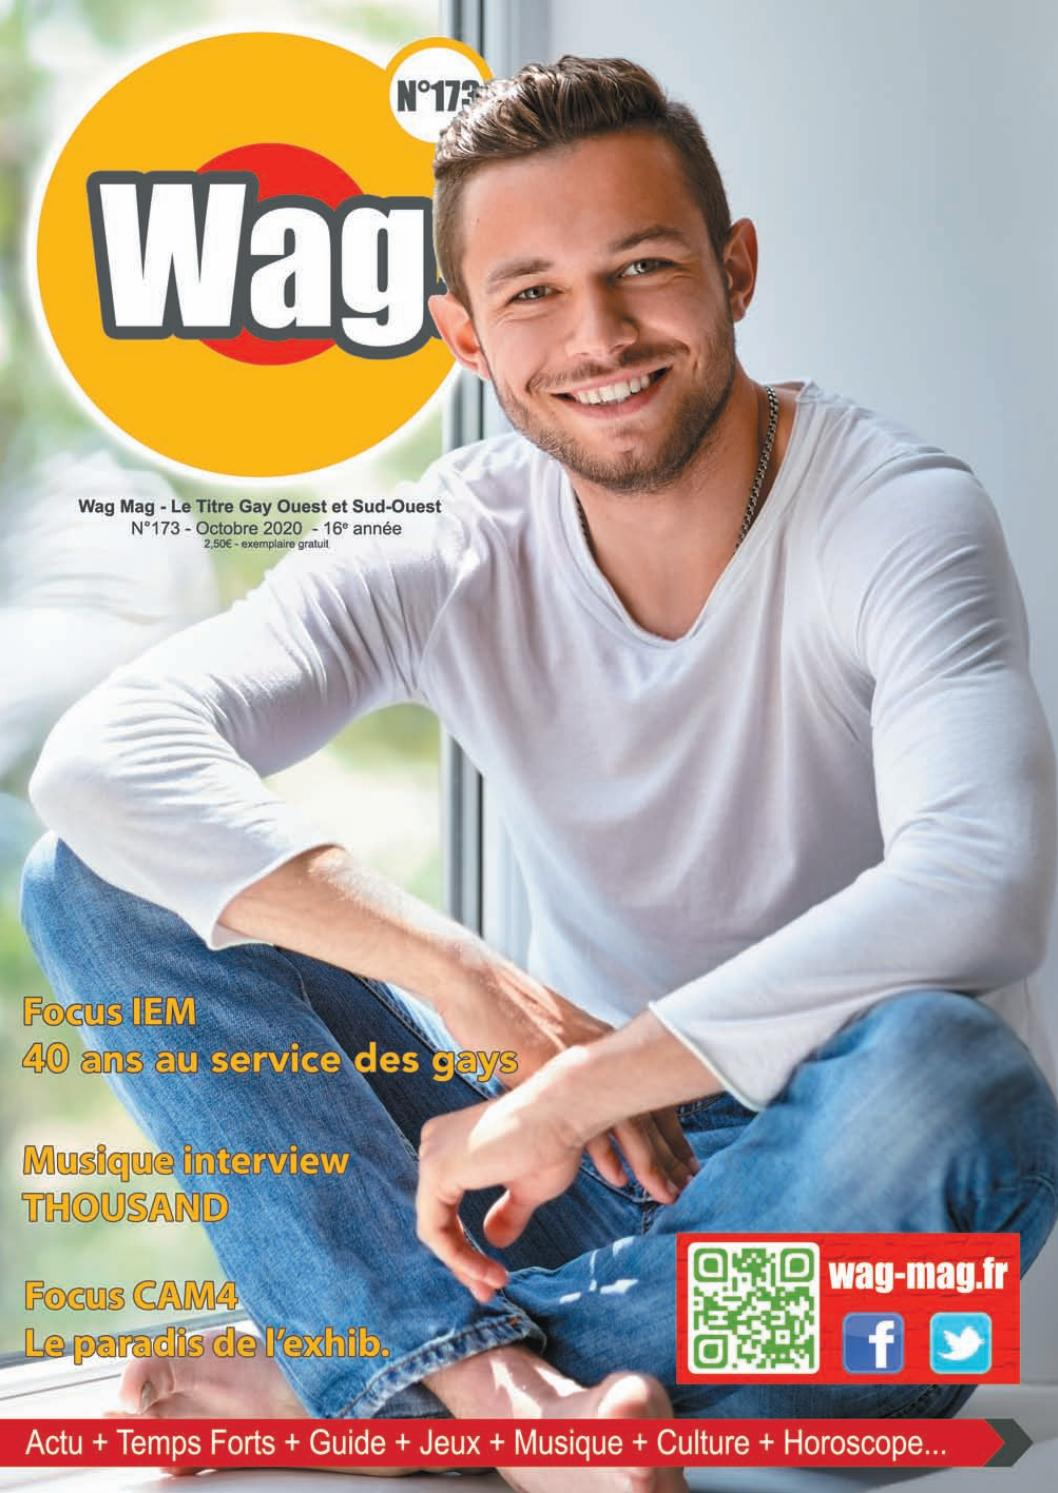 rennes rencontre gay horoscope a Neuilly-sur-Marne